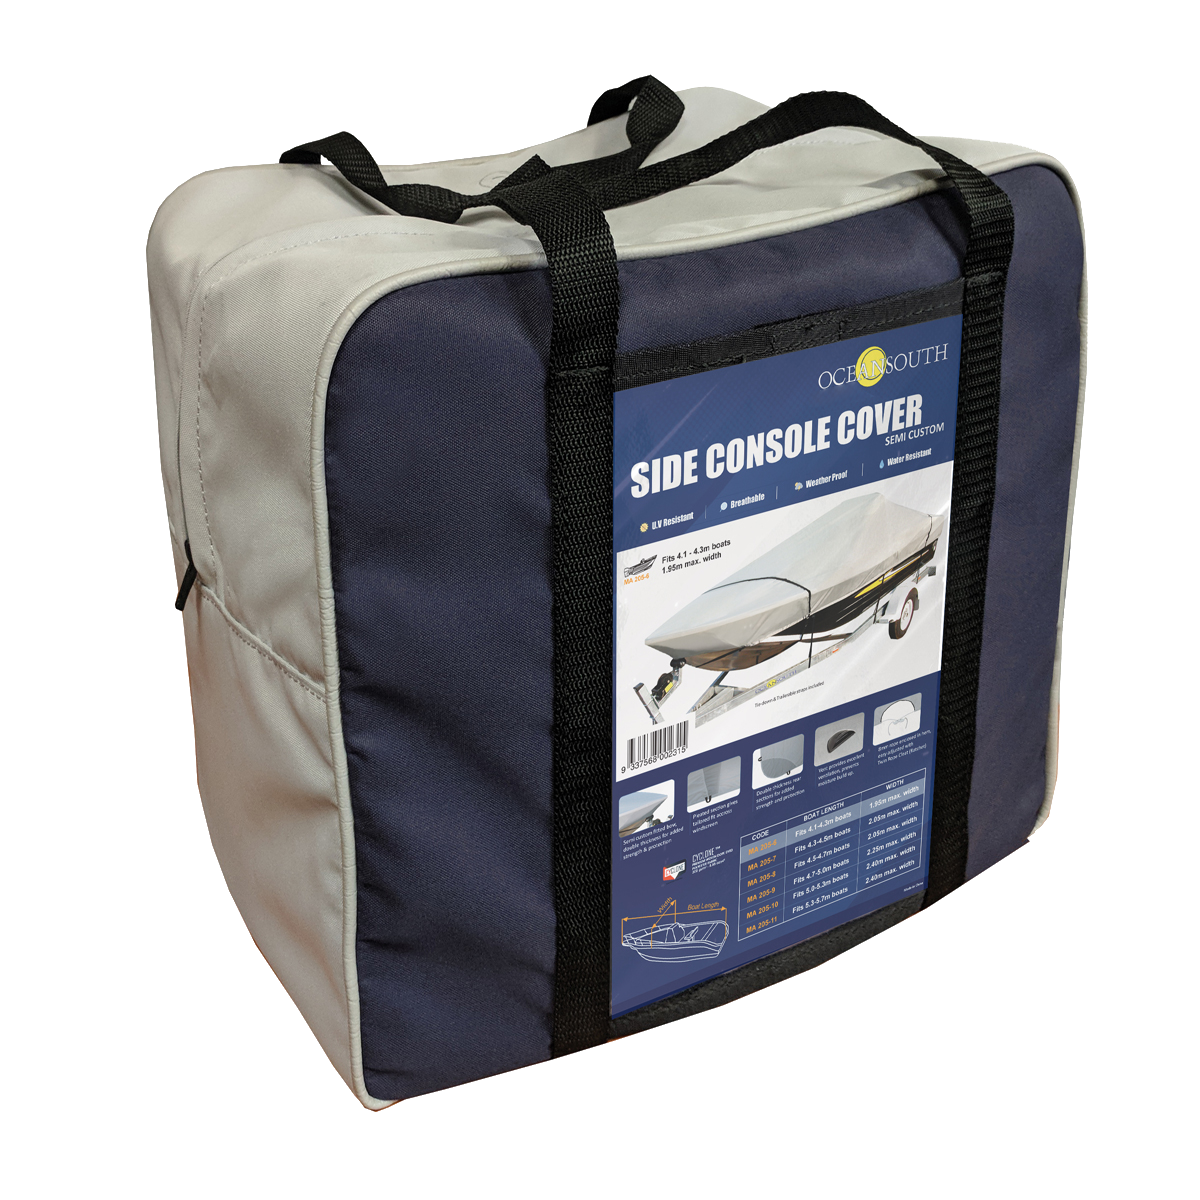 Side Console Cover Bag